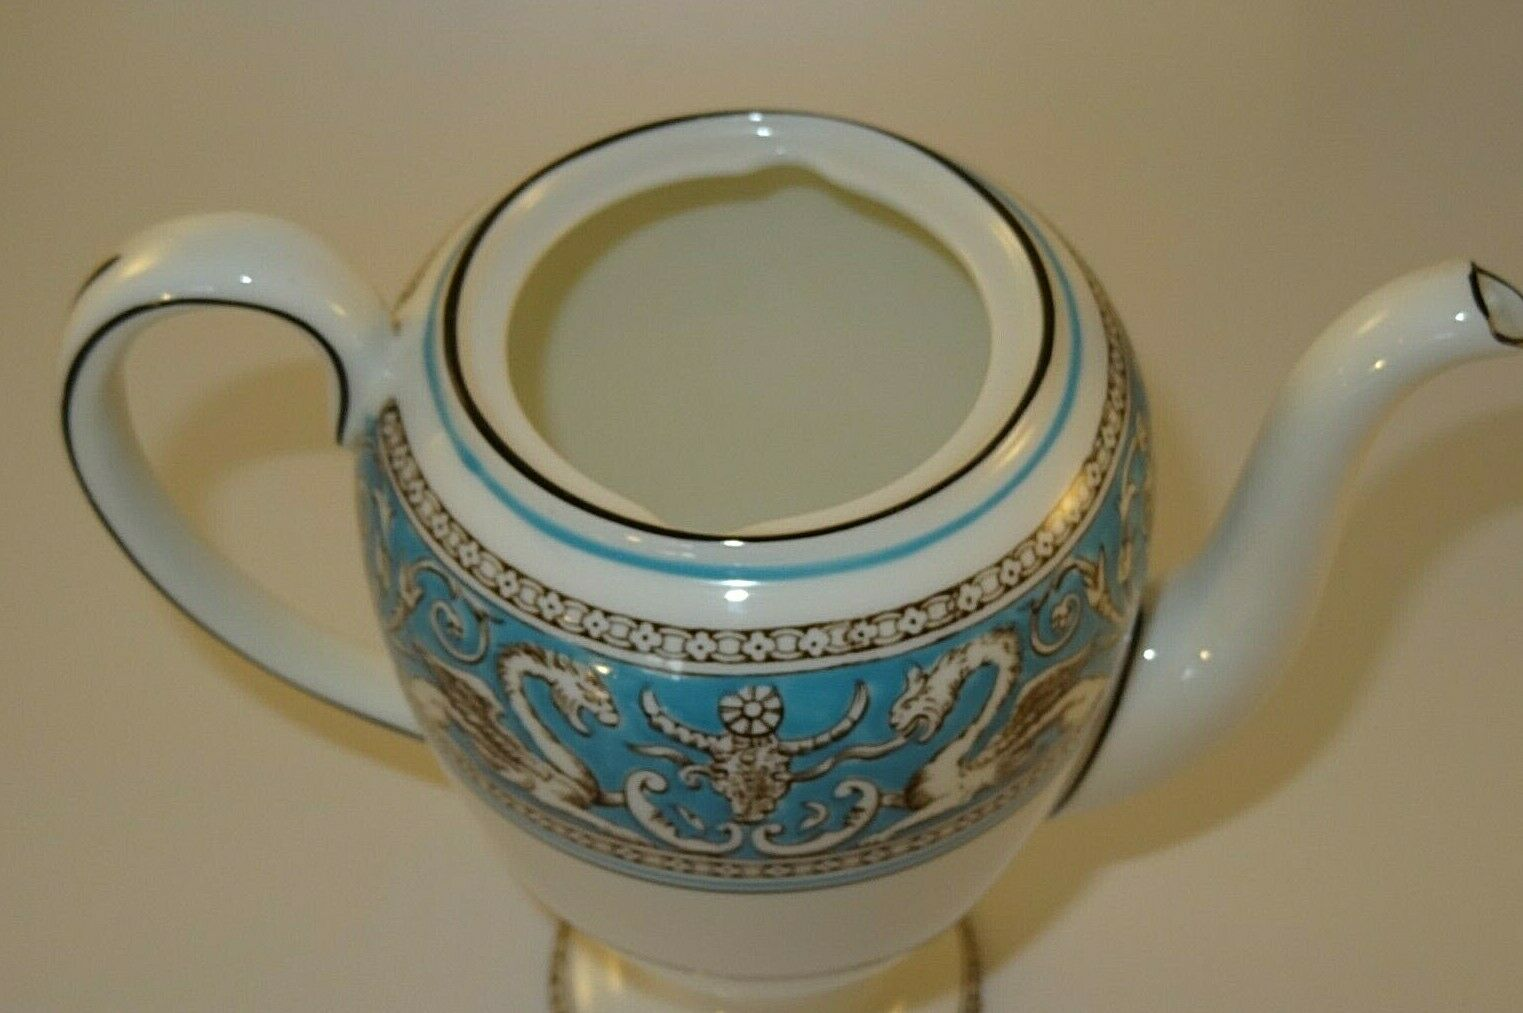 Image 6 - Wedgwood Florentine W2714 Turquoise Coffee Pot 1960s Excellent